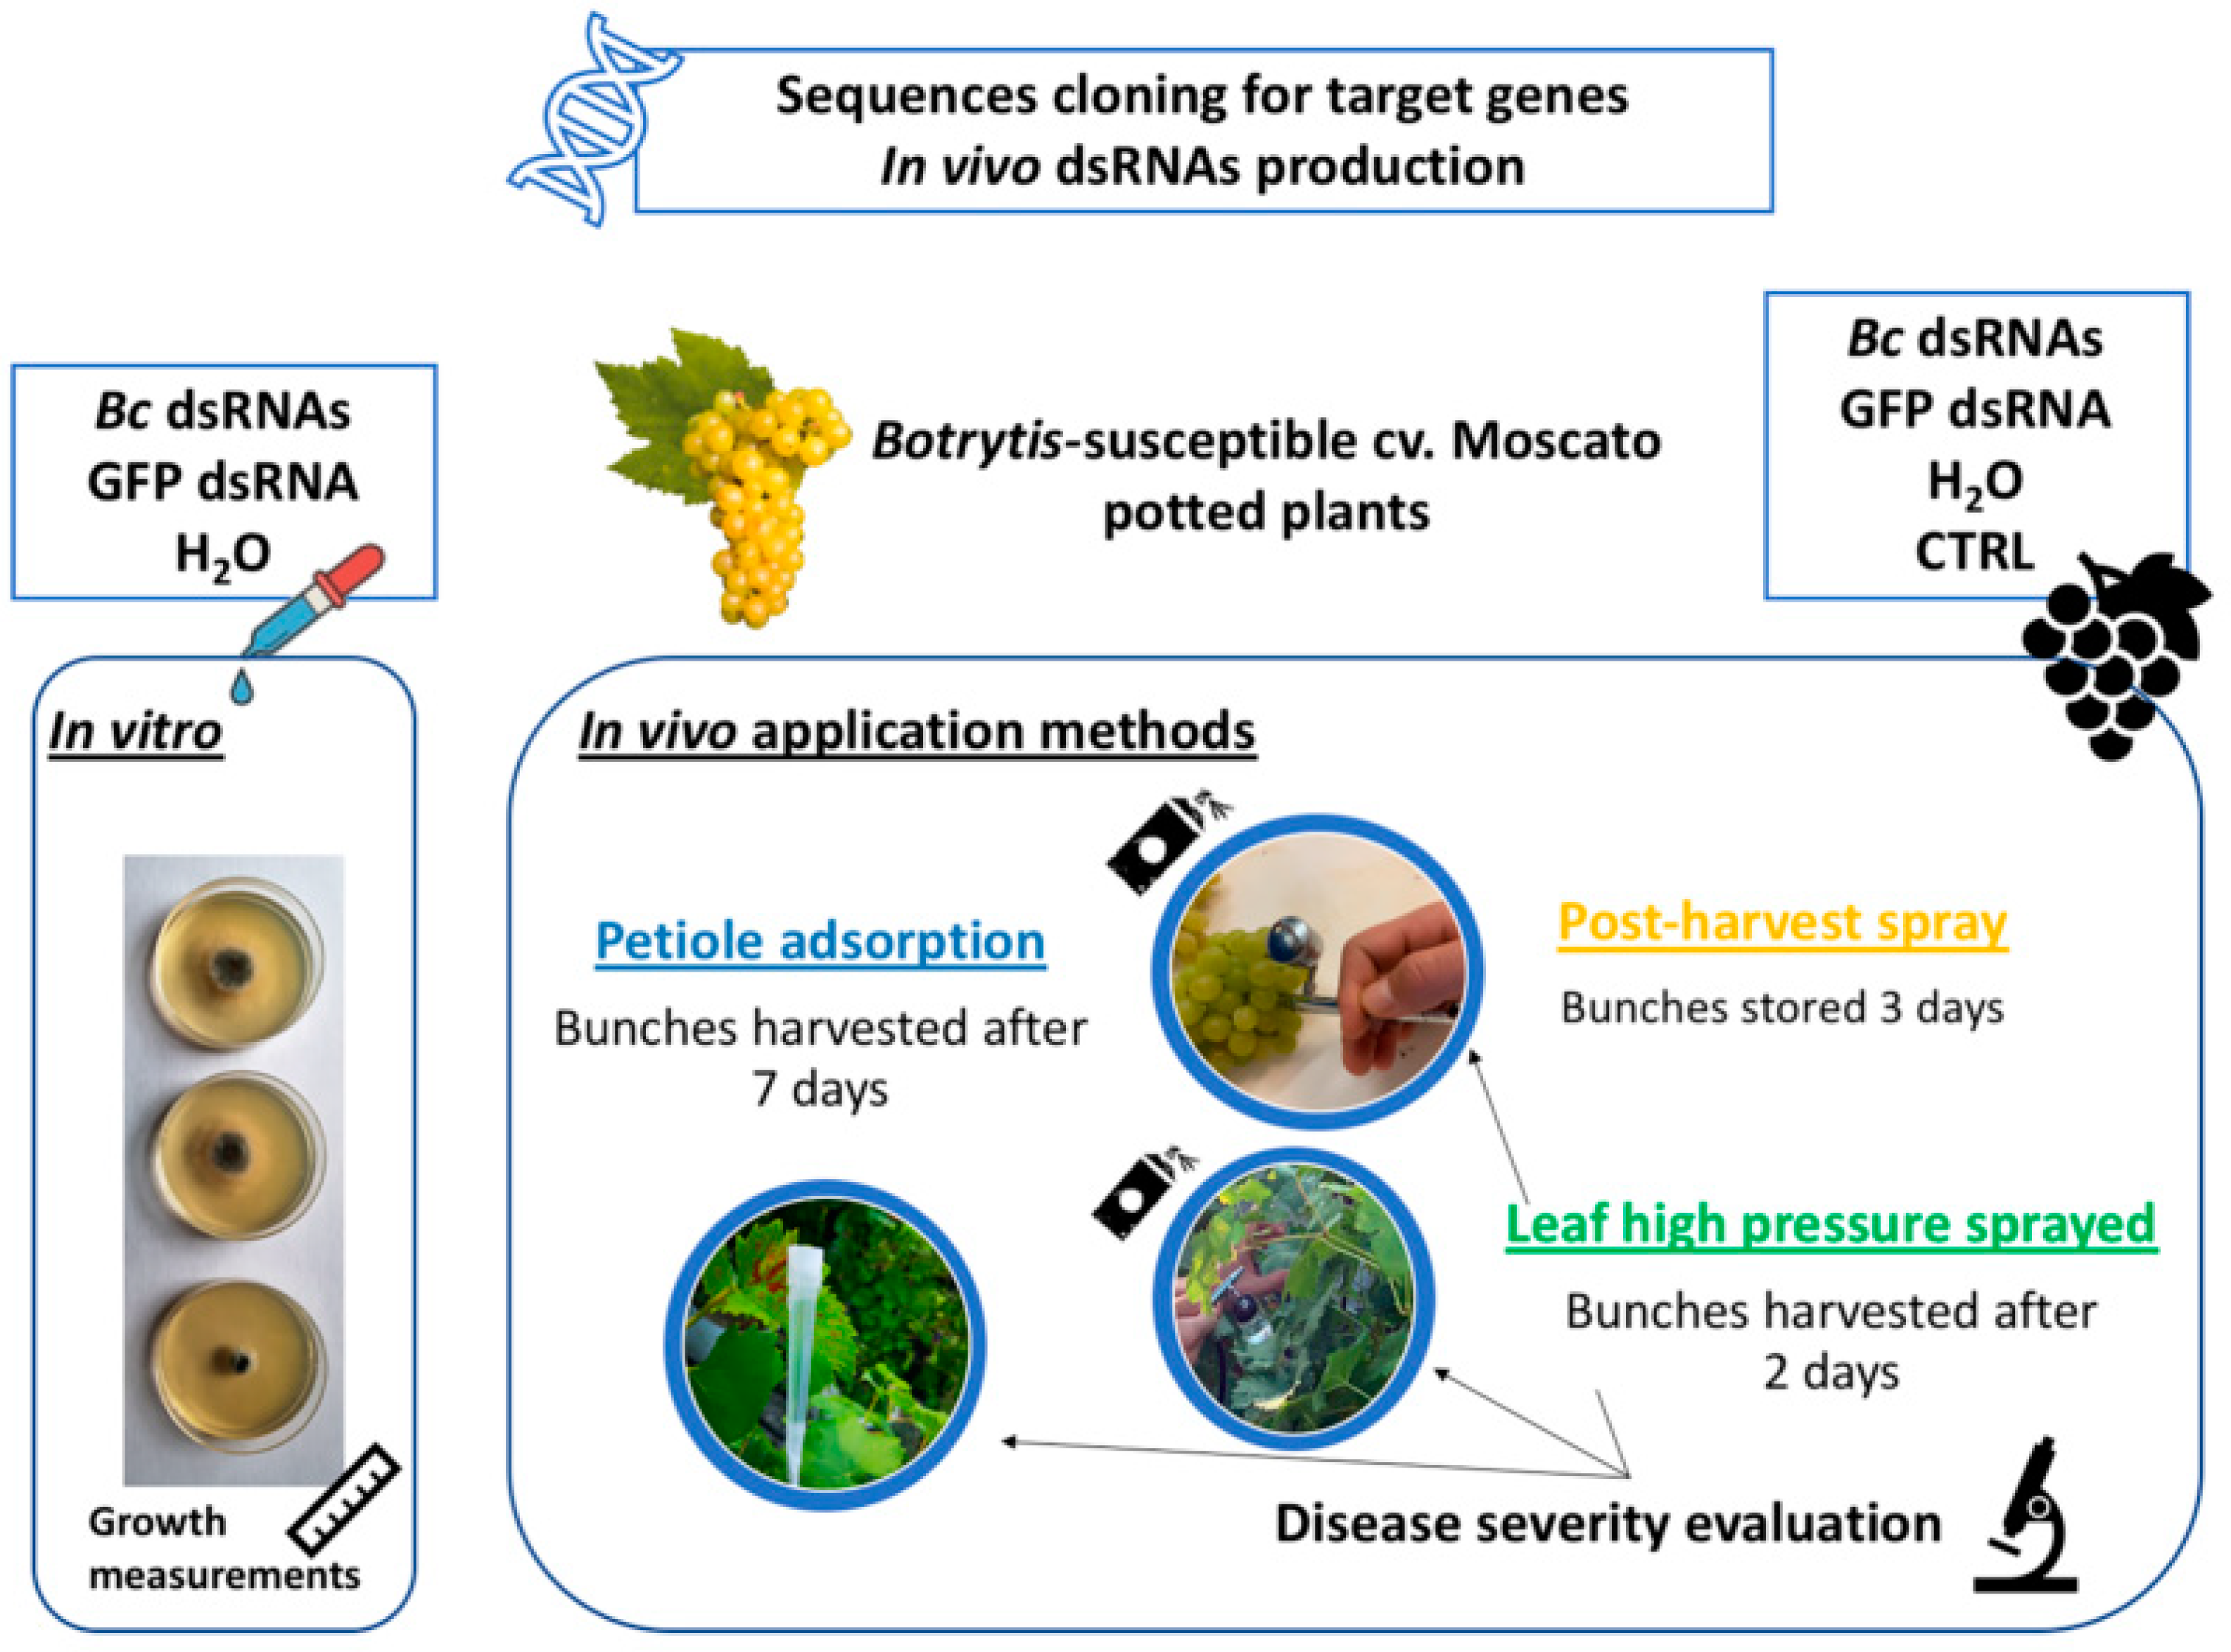 Biomolecules Free Full Text Double Stranded Rnas Dsrnas As A Sustainable Tool Against Gray Mold Botrytis Cinerea In Grapevine Effectiveness Of Different Application Methods In An Open Air Environment Html